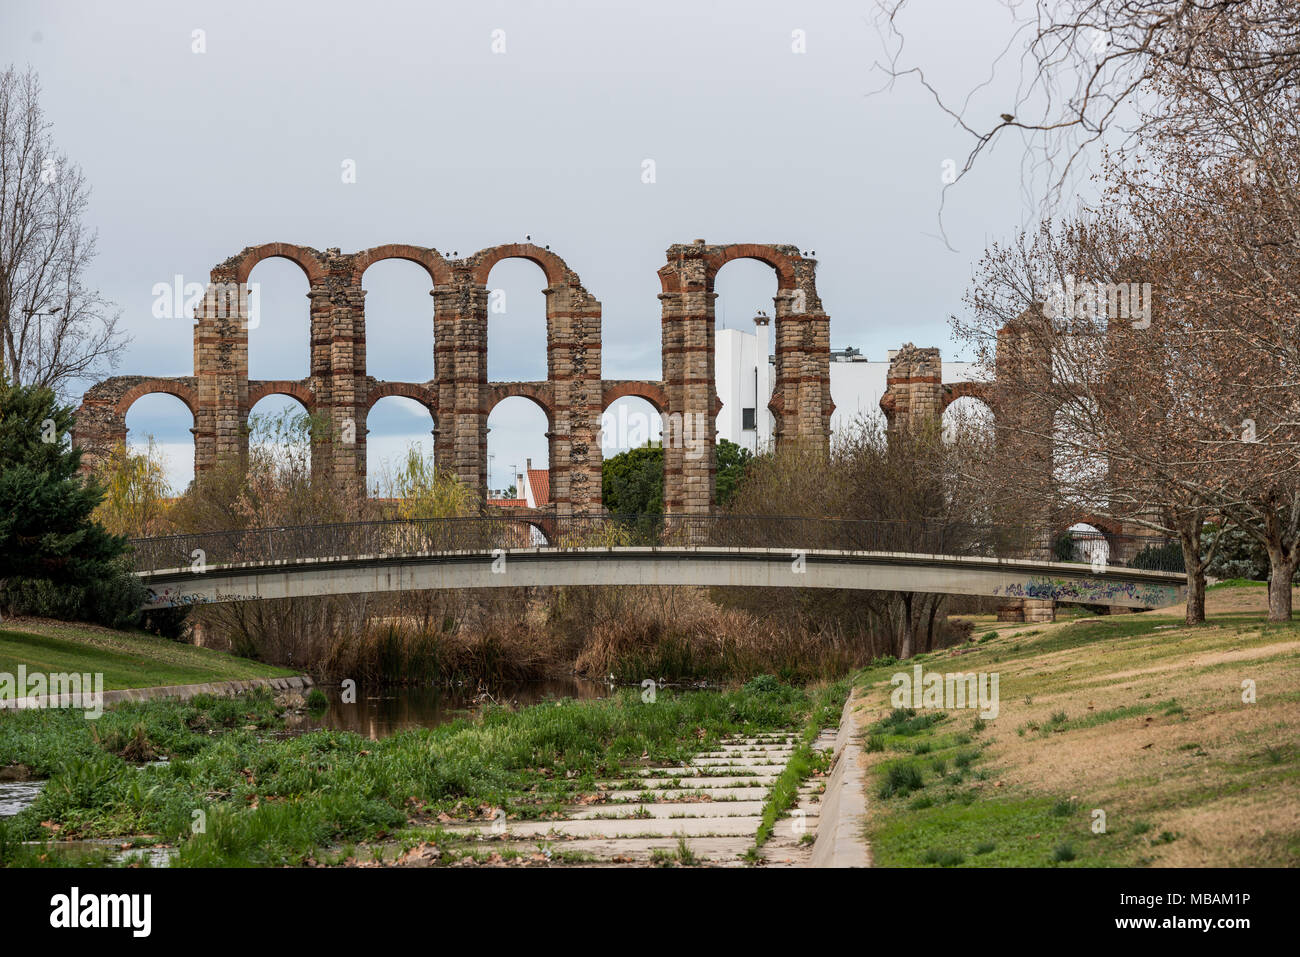 The aqueduct of miracles in the city of Mérida, Extremadura, Spain. - Stock Image